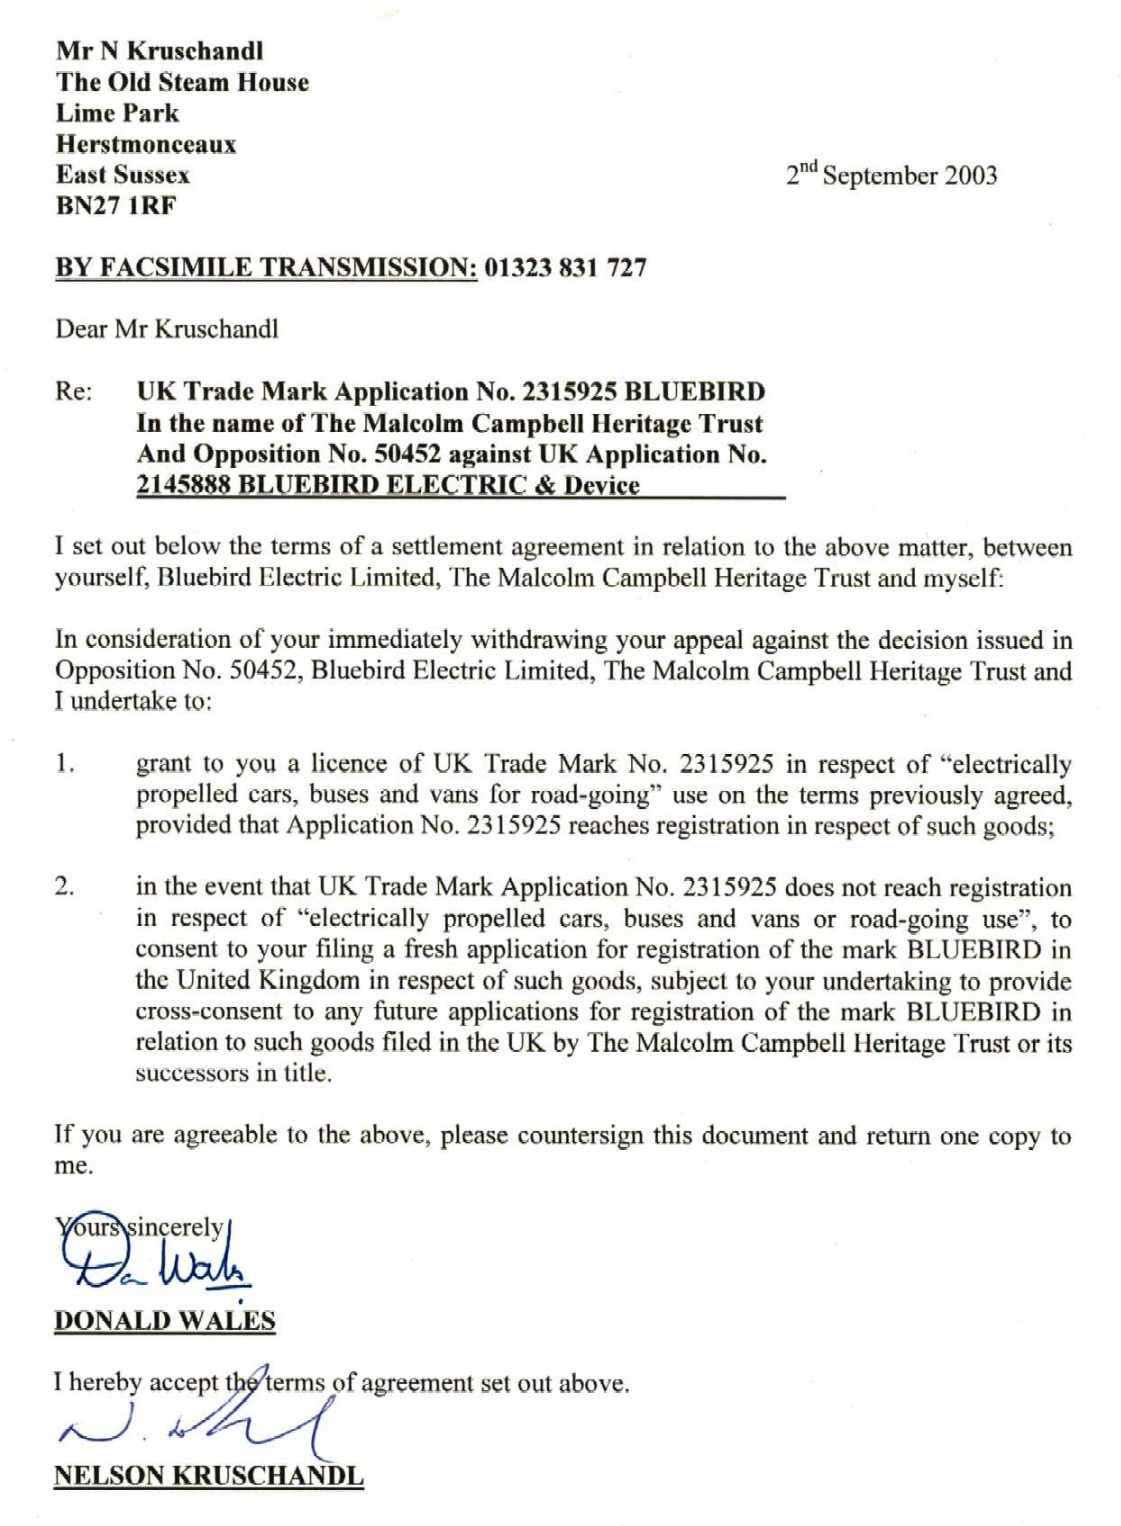 Undertaking from the Malcolm Campbell Heritage Trust to Nelson Kruschandl, confirming issue of a Licence for withdrawing Appeal to opposition 50452